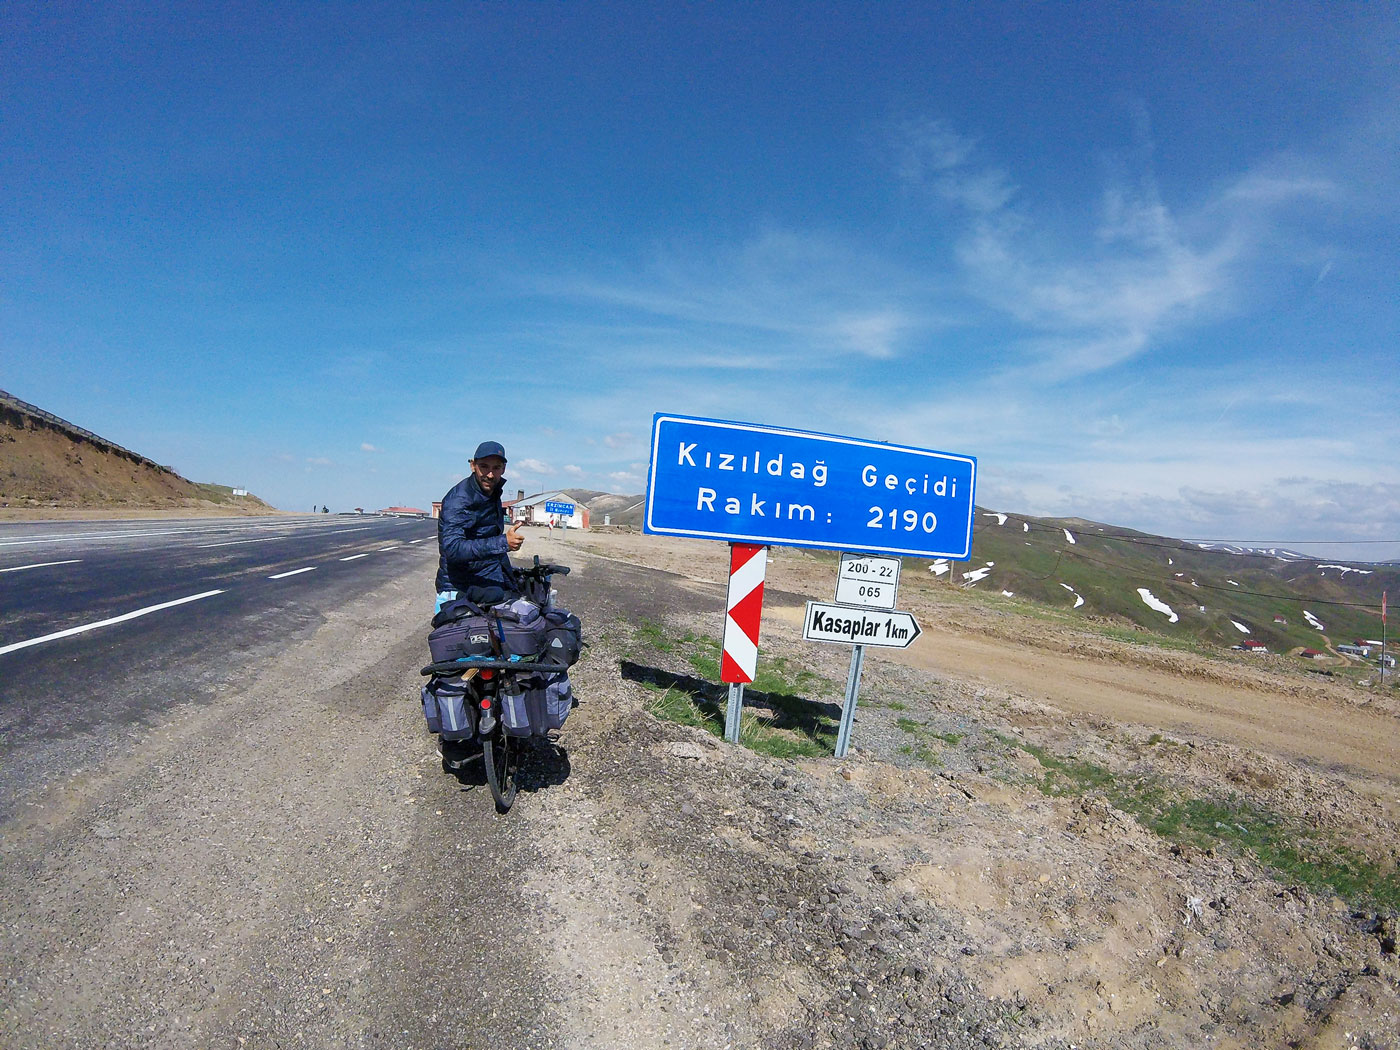 Cycling in Turkey, Arthur at the top at 2190m altitude. Cycling Turkish, Arthur at the summit at 2190m altitude.